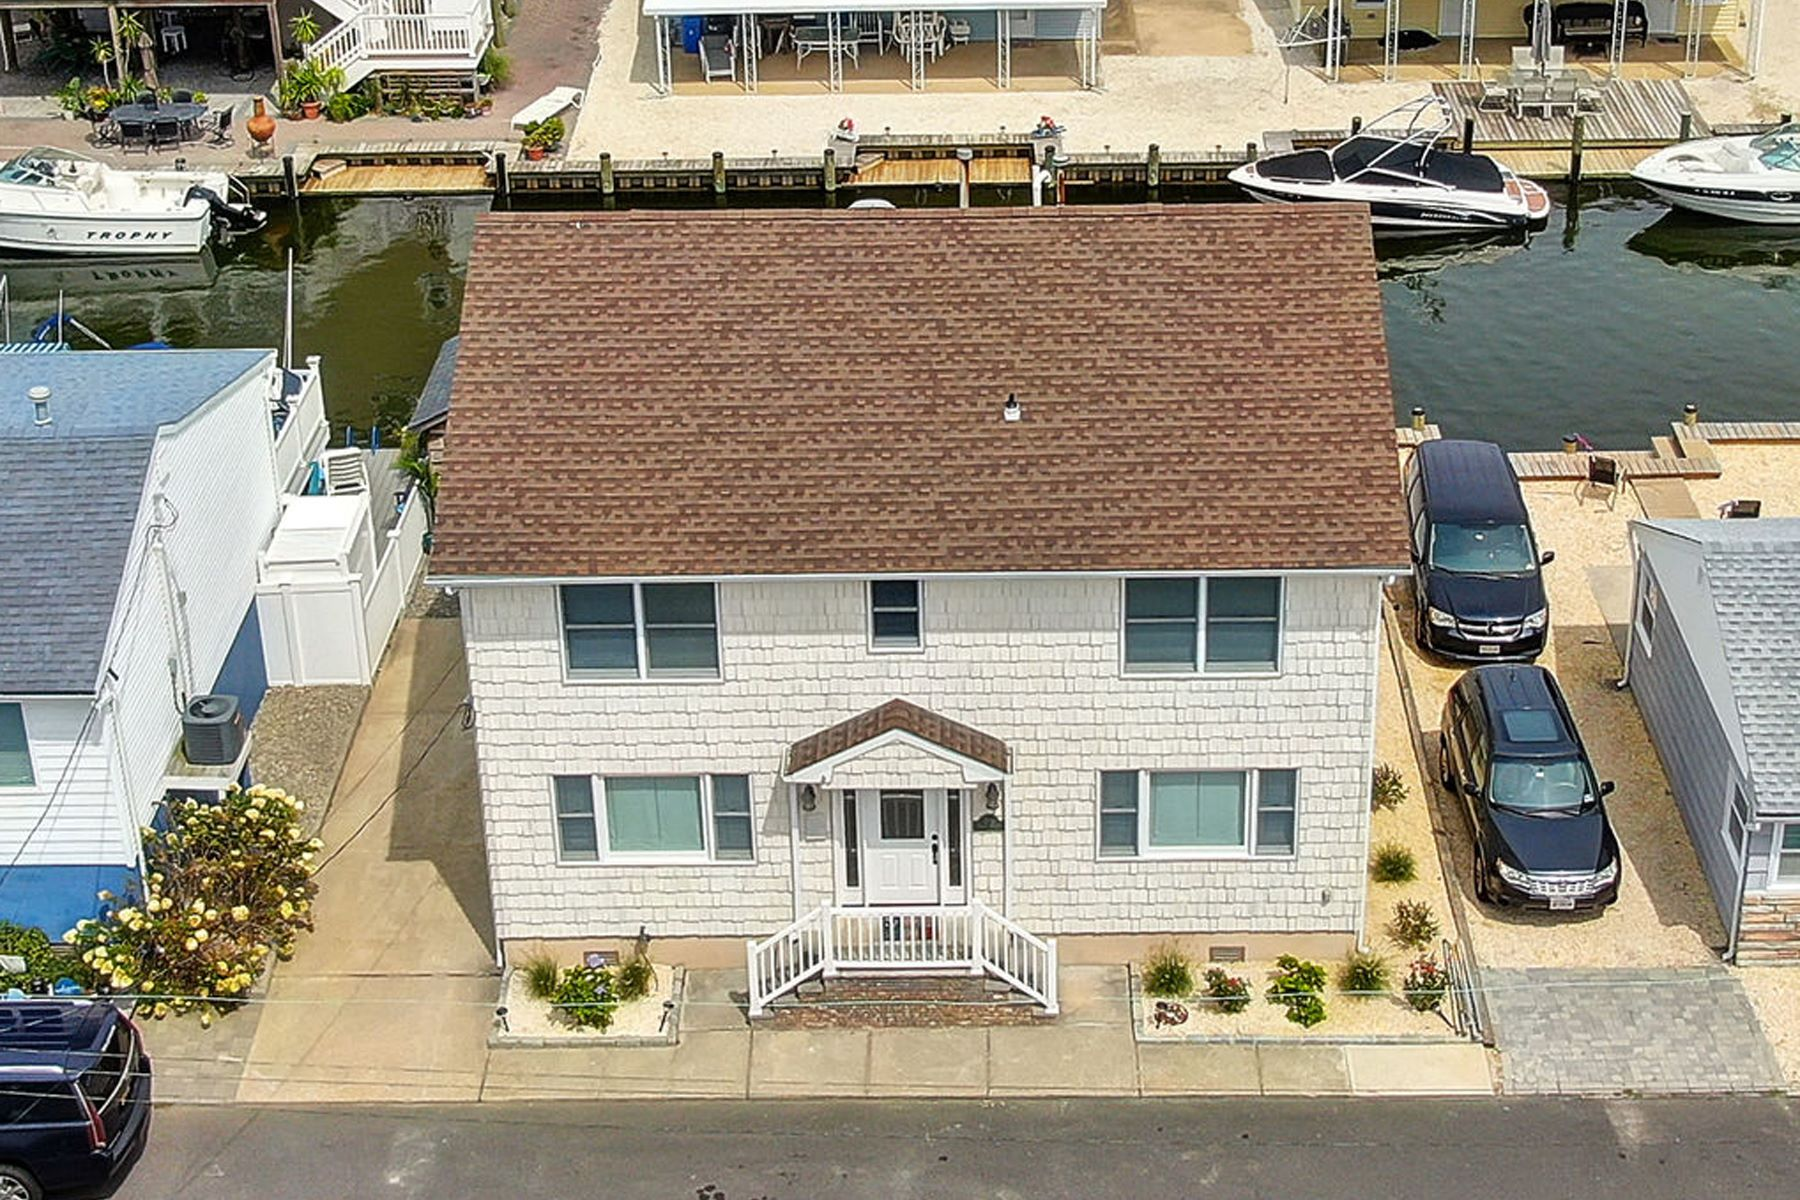 Single Family Homes for Sale at Custom Lagoon Waterfront Home 218 Joseph Street, Lavallette, New Jersey 08735 United States